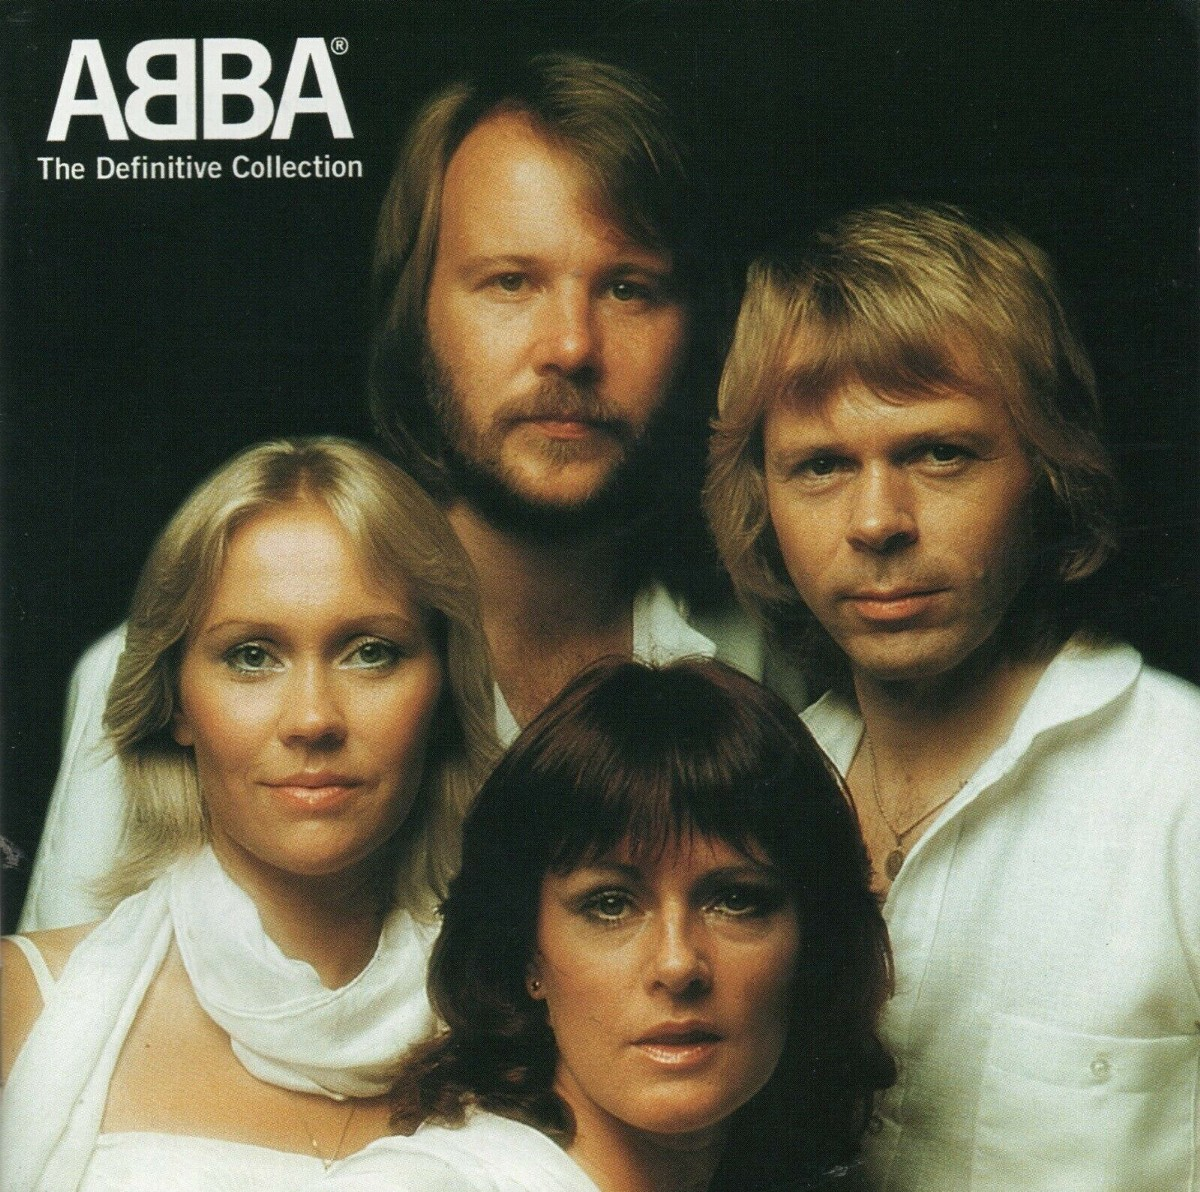 The ABBA explainer to BERT and GPT-2